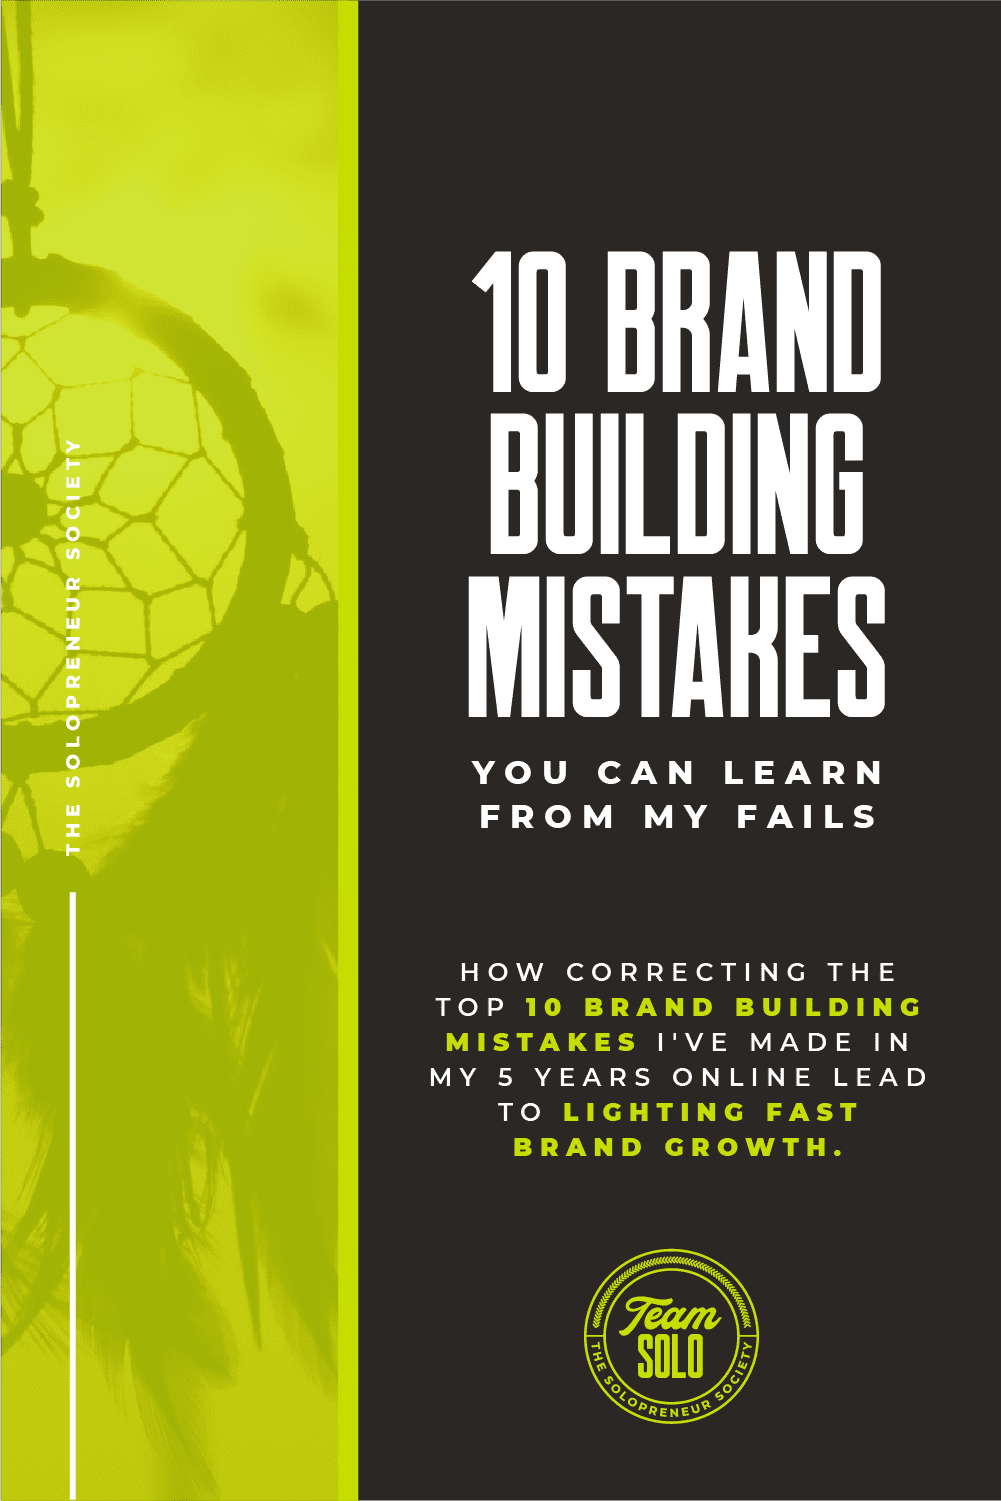 10 Brand Building Mistakes You Can Learn From My Fails